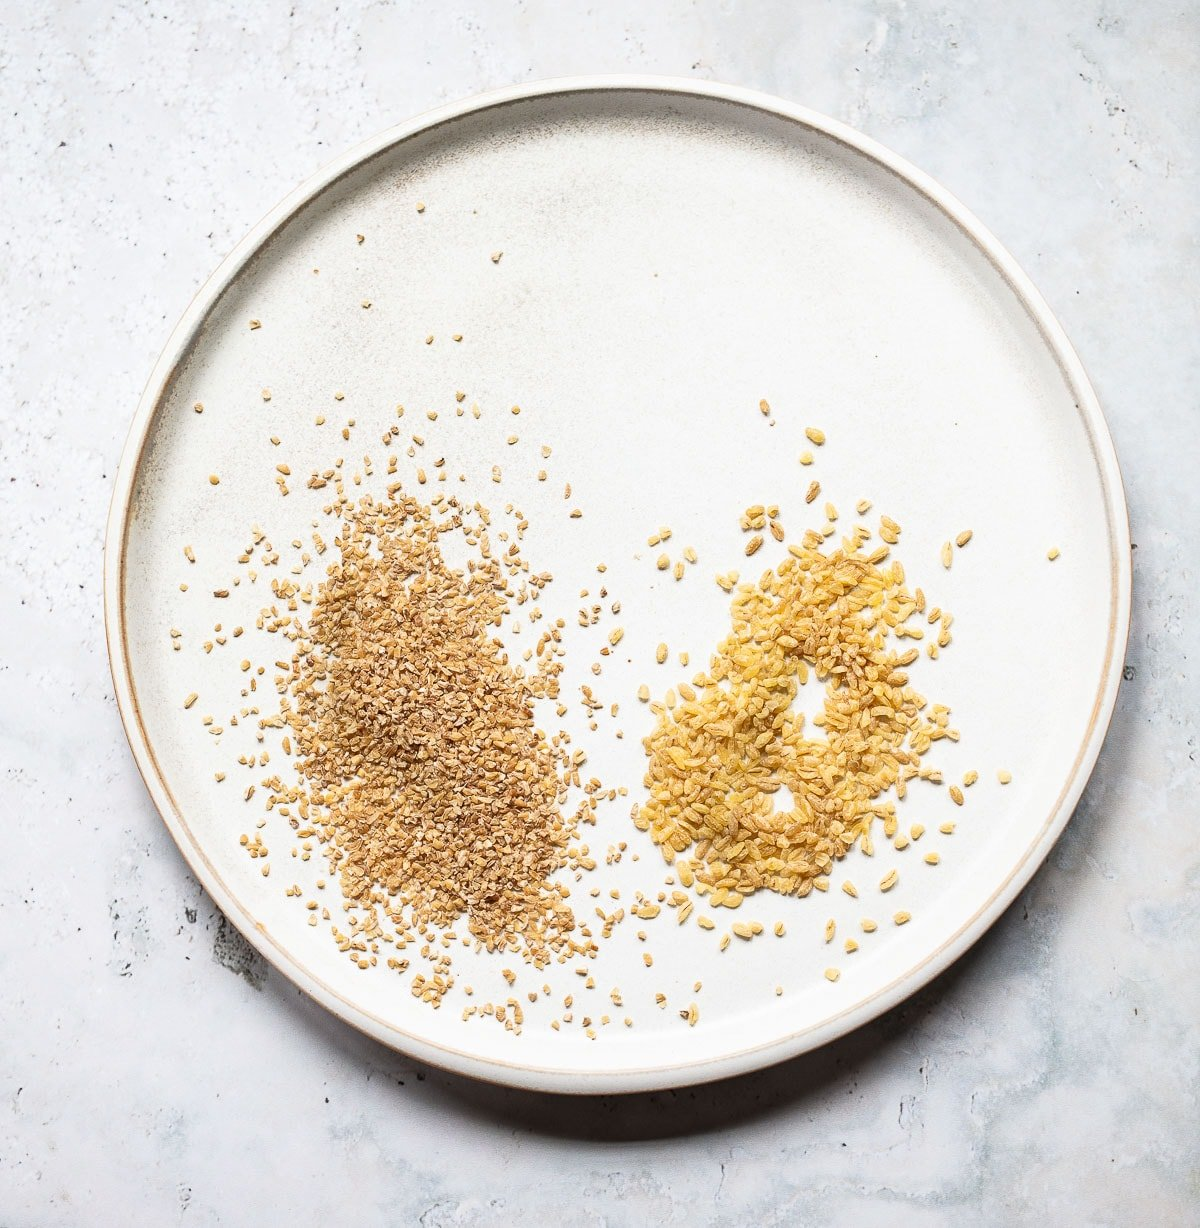 Bulgur wheat in coarse and extra-course grains on a plate for tabbouleh salad.